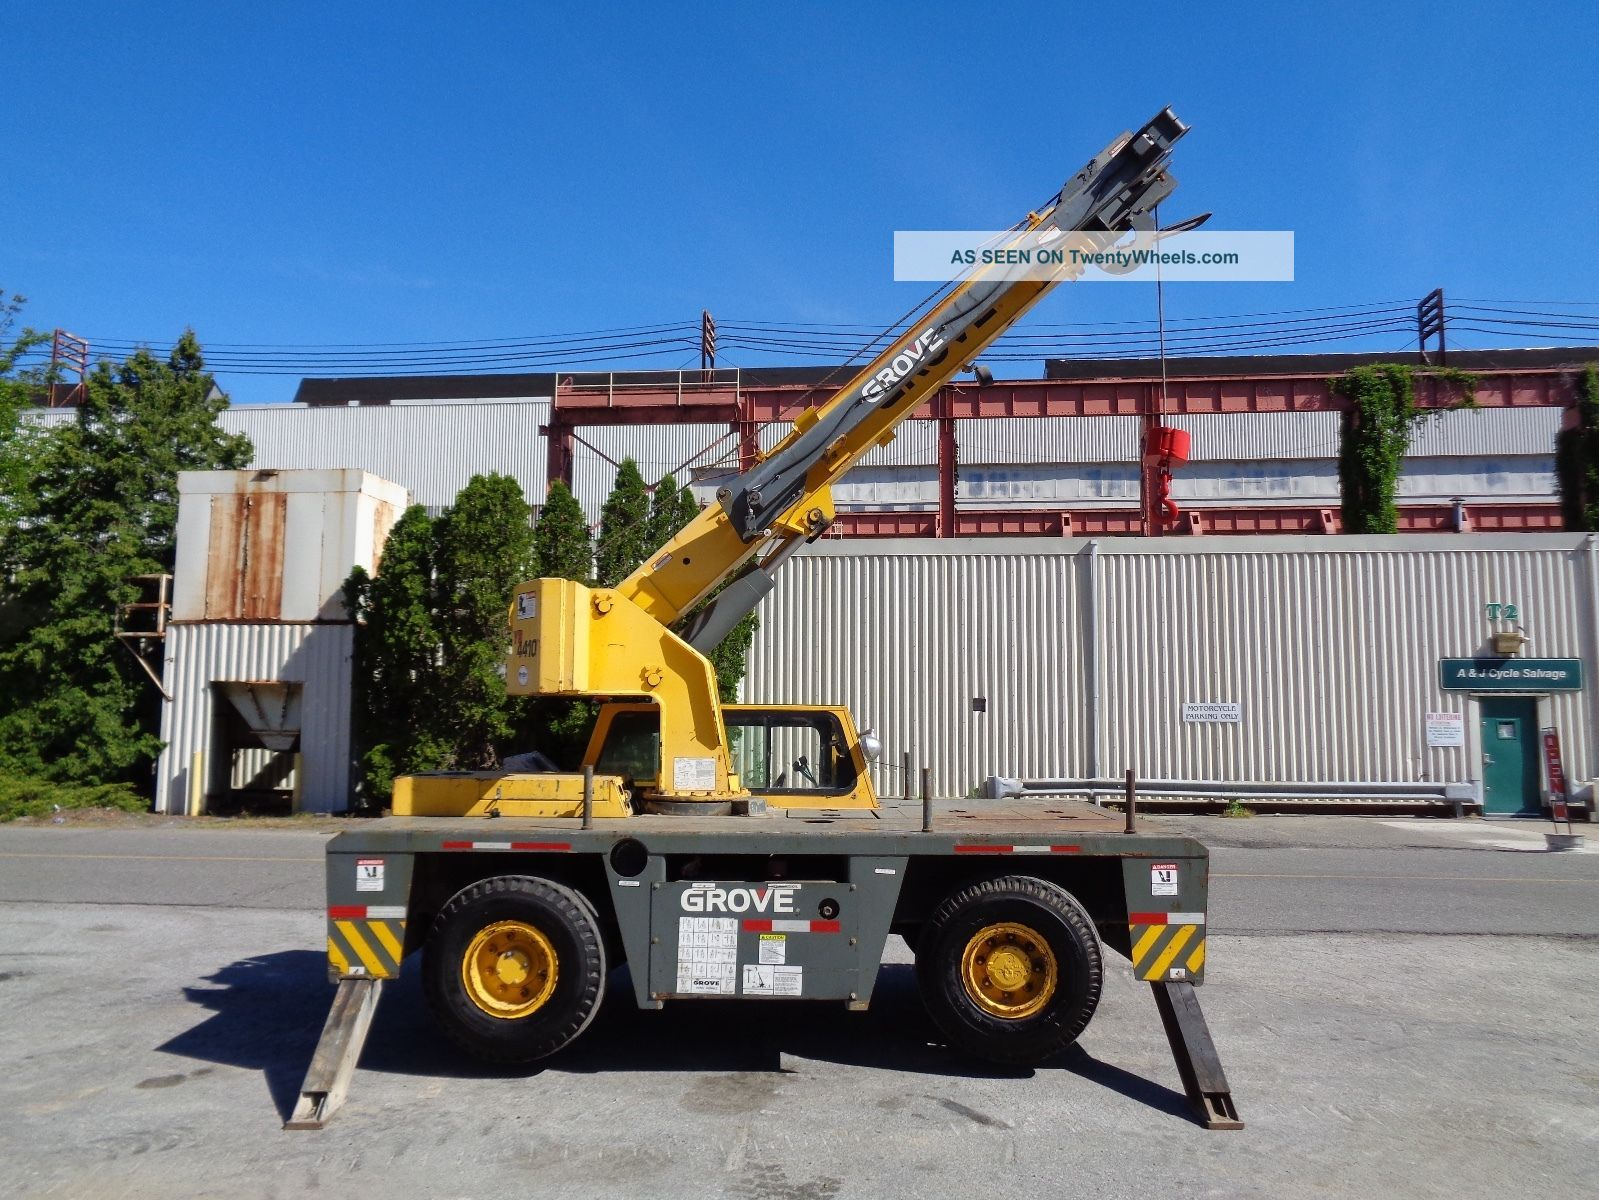 2002 Grove Yb4410 10 Ton Carry Deck Crane - Enclosed Cab - Lmi - Diesel Cranes photo